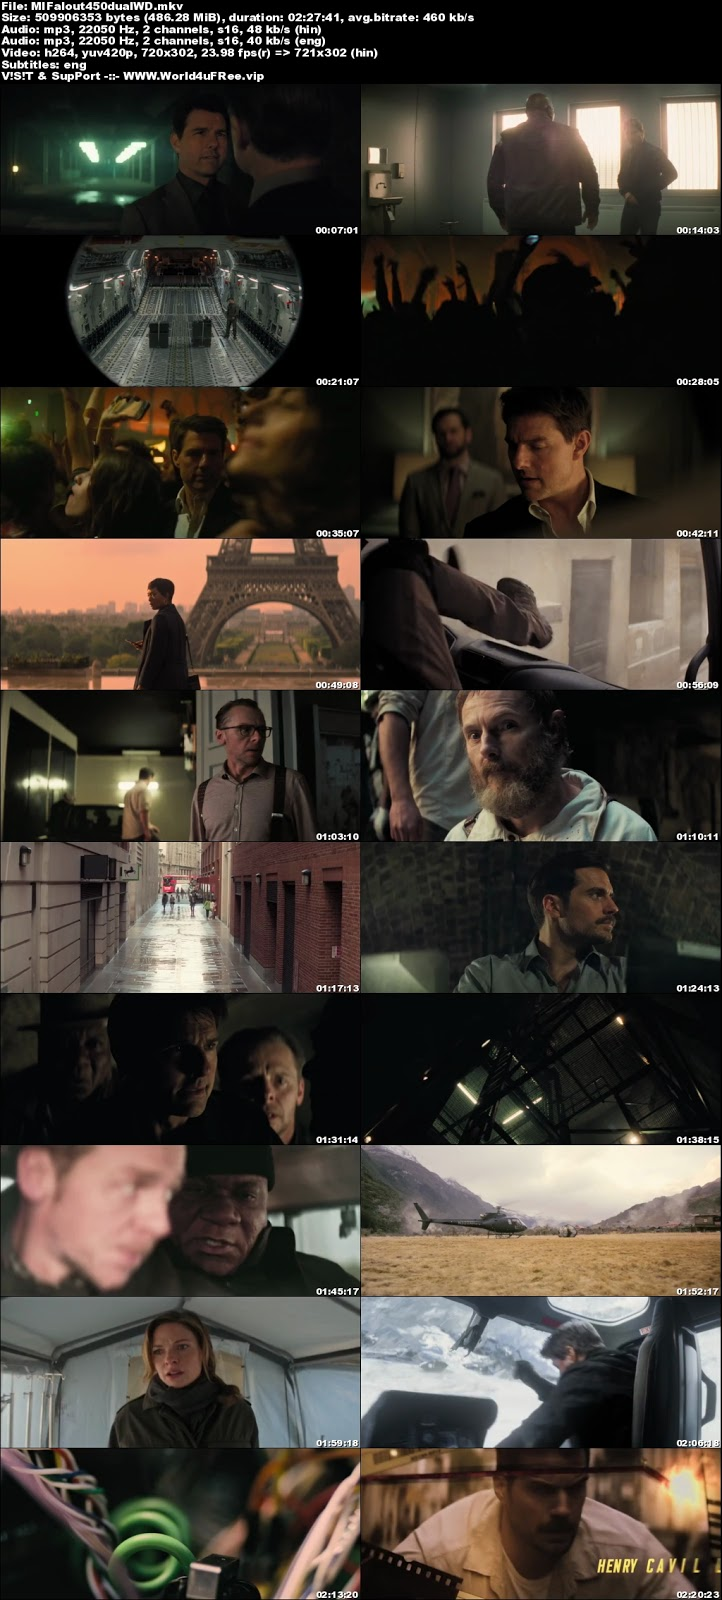 Mission Impossible Fallout 2018 Dual Audio HDRip 480p 450Mb world4ufree.vip , South indian movie Mission Impossible Fallout 2018 hindi dubbed world4ufree.vip 720p hdrip webrip dvdrip 700mb brrip bluray free download or watch online at world4ufree.vip